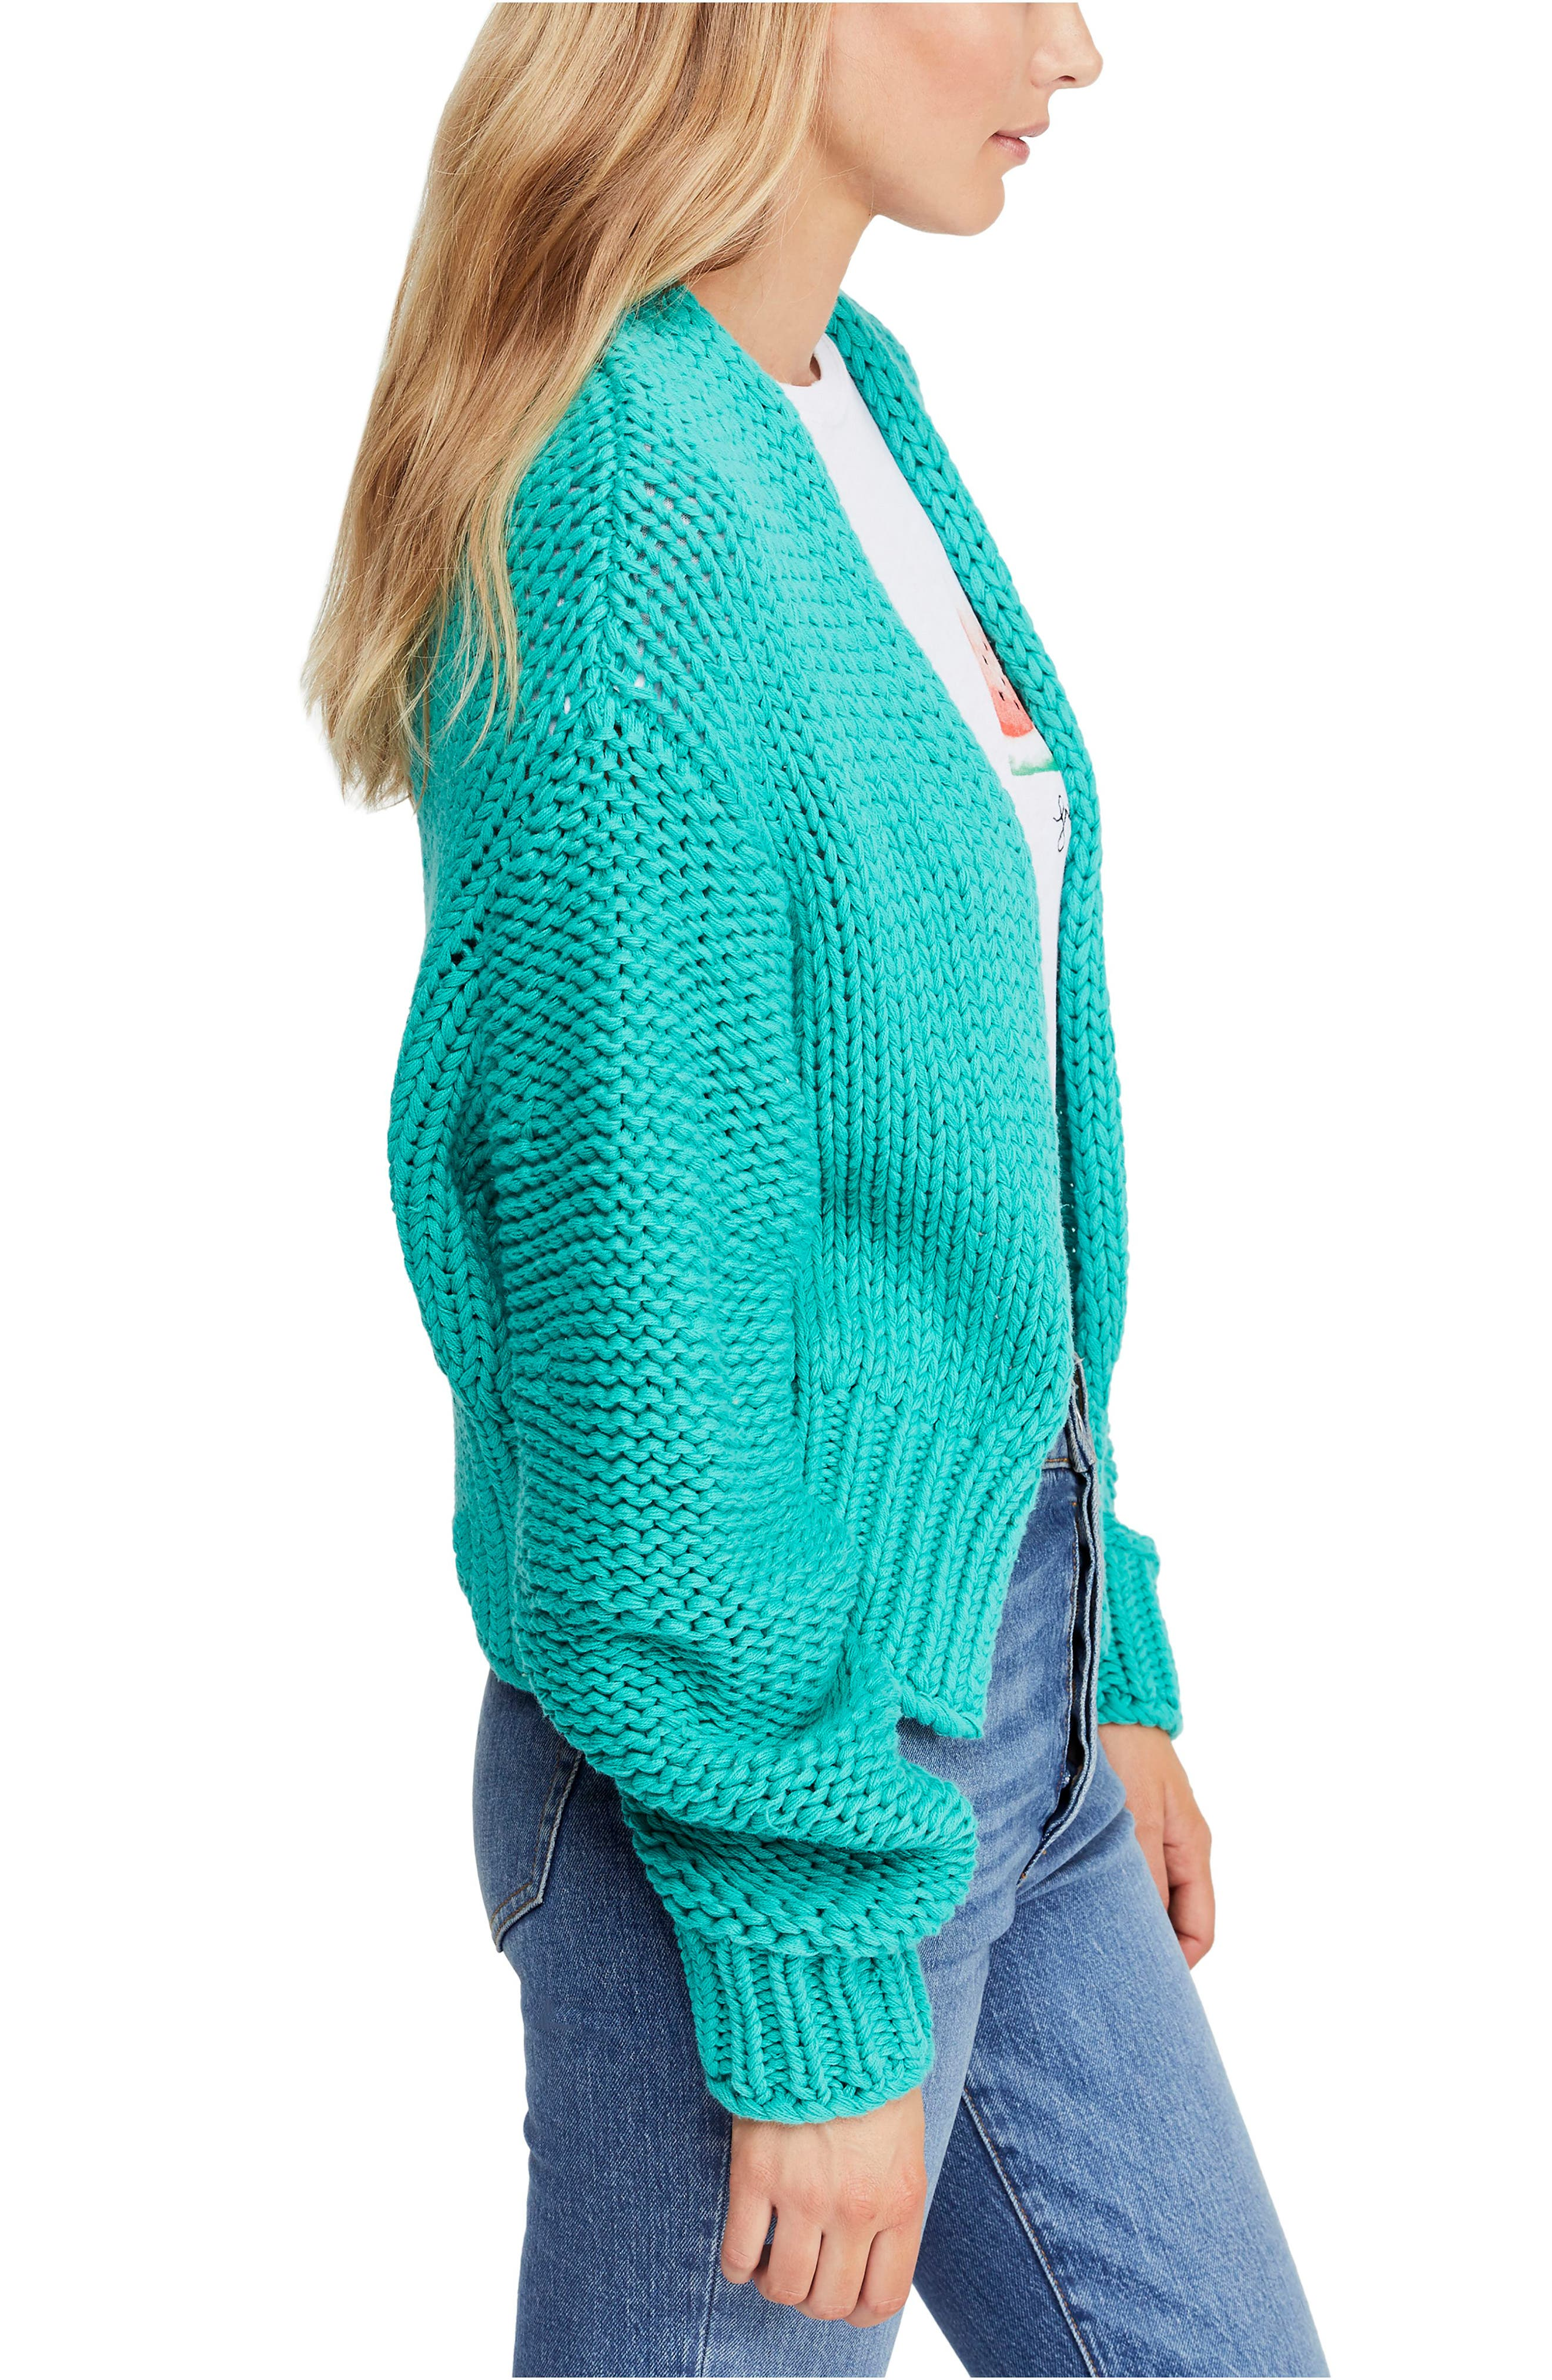 FREE PEOPLE, Glow For It Cardigan, Alternate thumbnail 3, color, 440